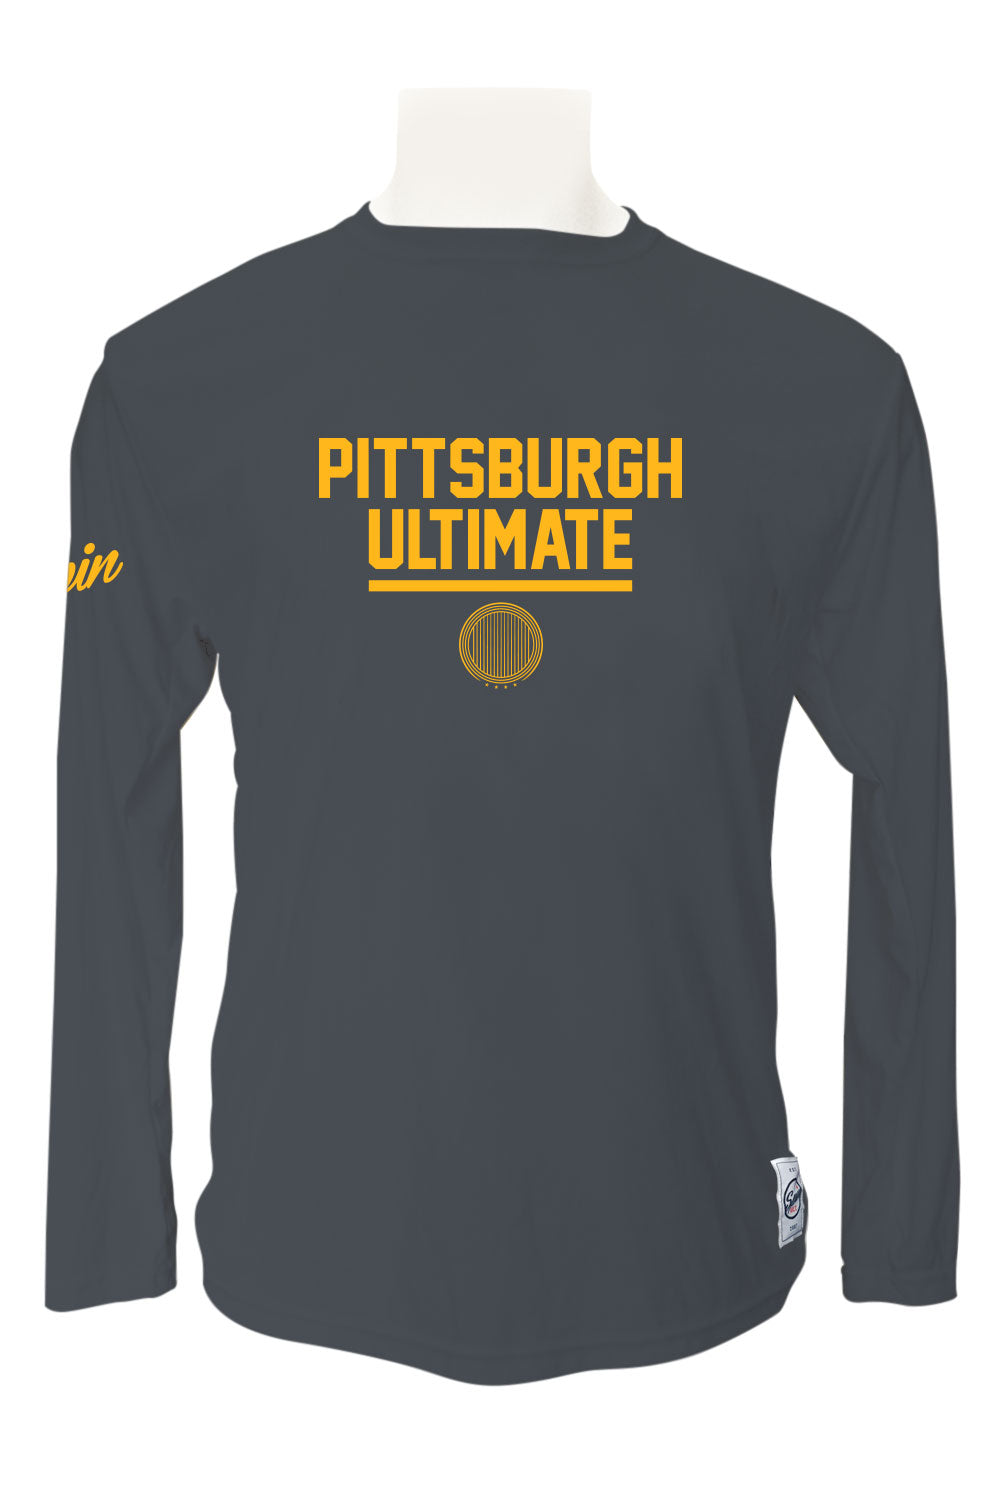 Pittsburgh Ultimate Long Sleeve Jersey (Charcoal)